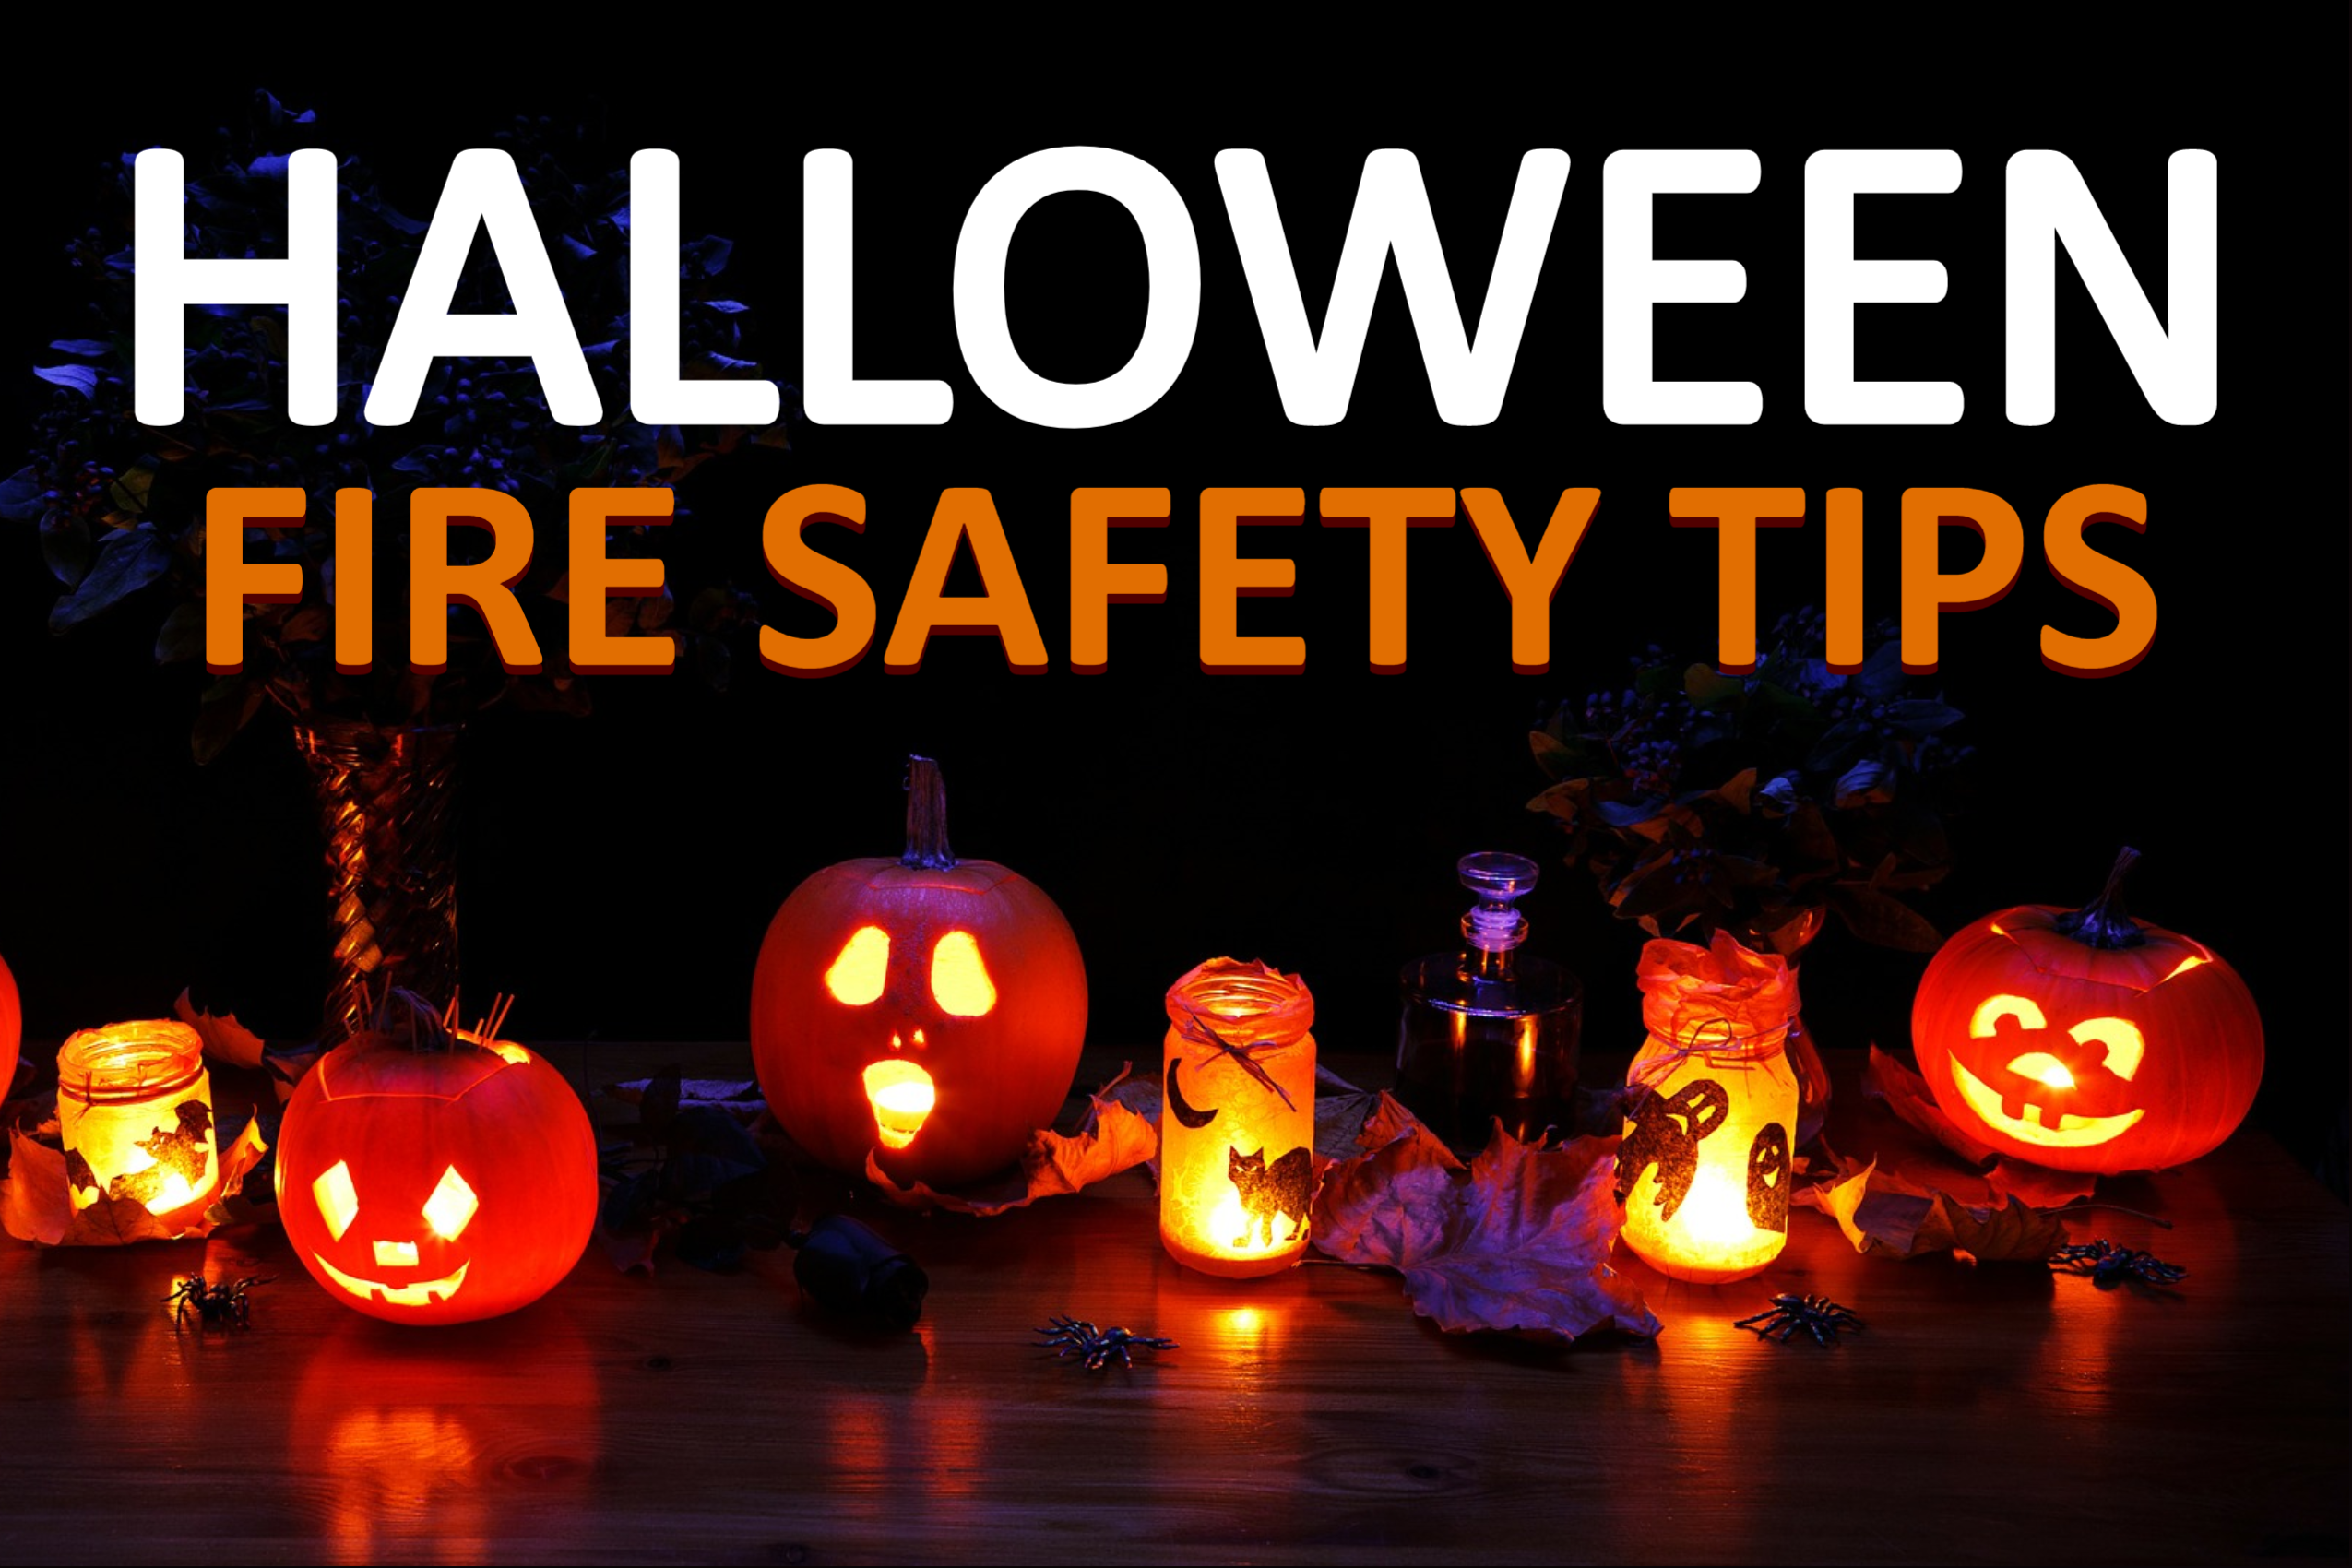 THINK FIRE SAFETY WHEN DECORATING FOR FALL AND HALLOWEEN